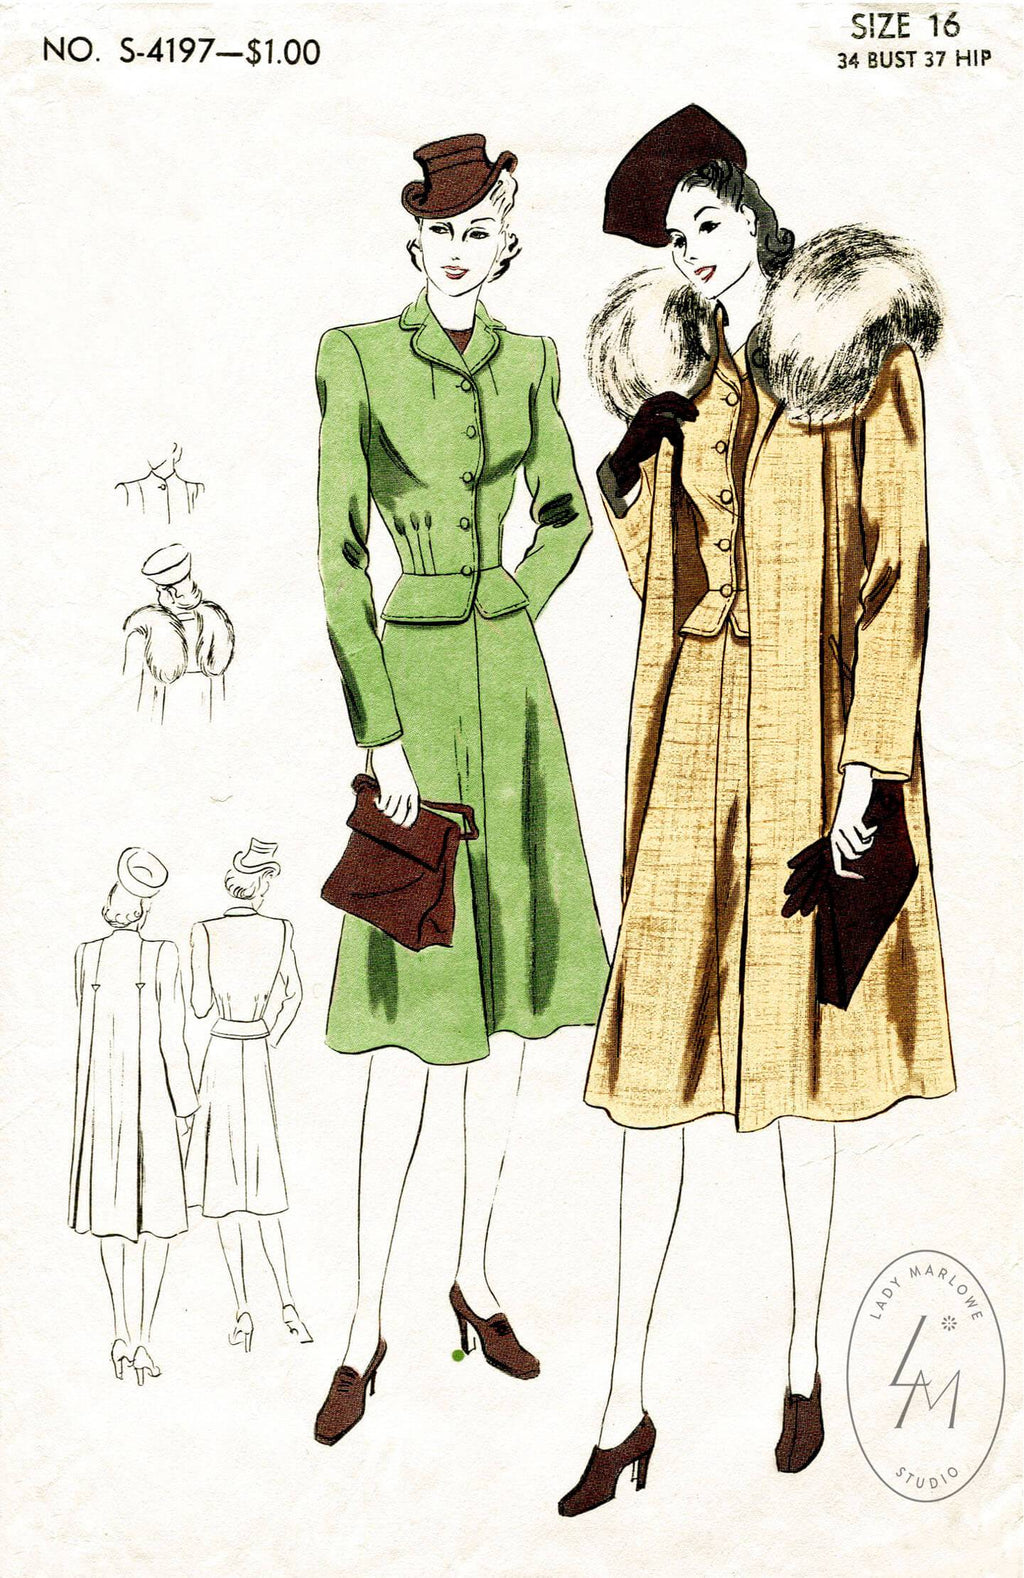 Vogue S-4197 1940s coat jacket skirt vintage sewing pattern